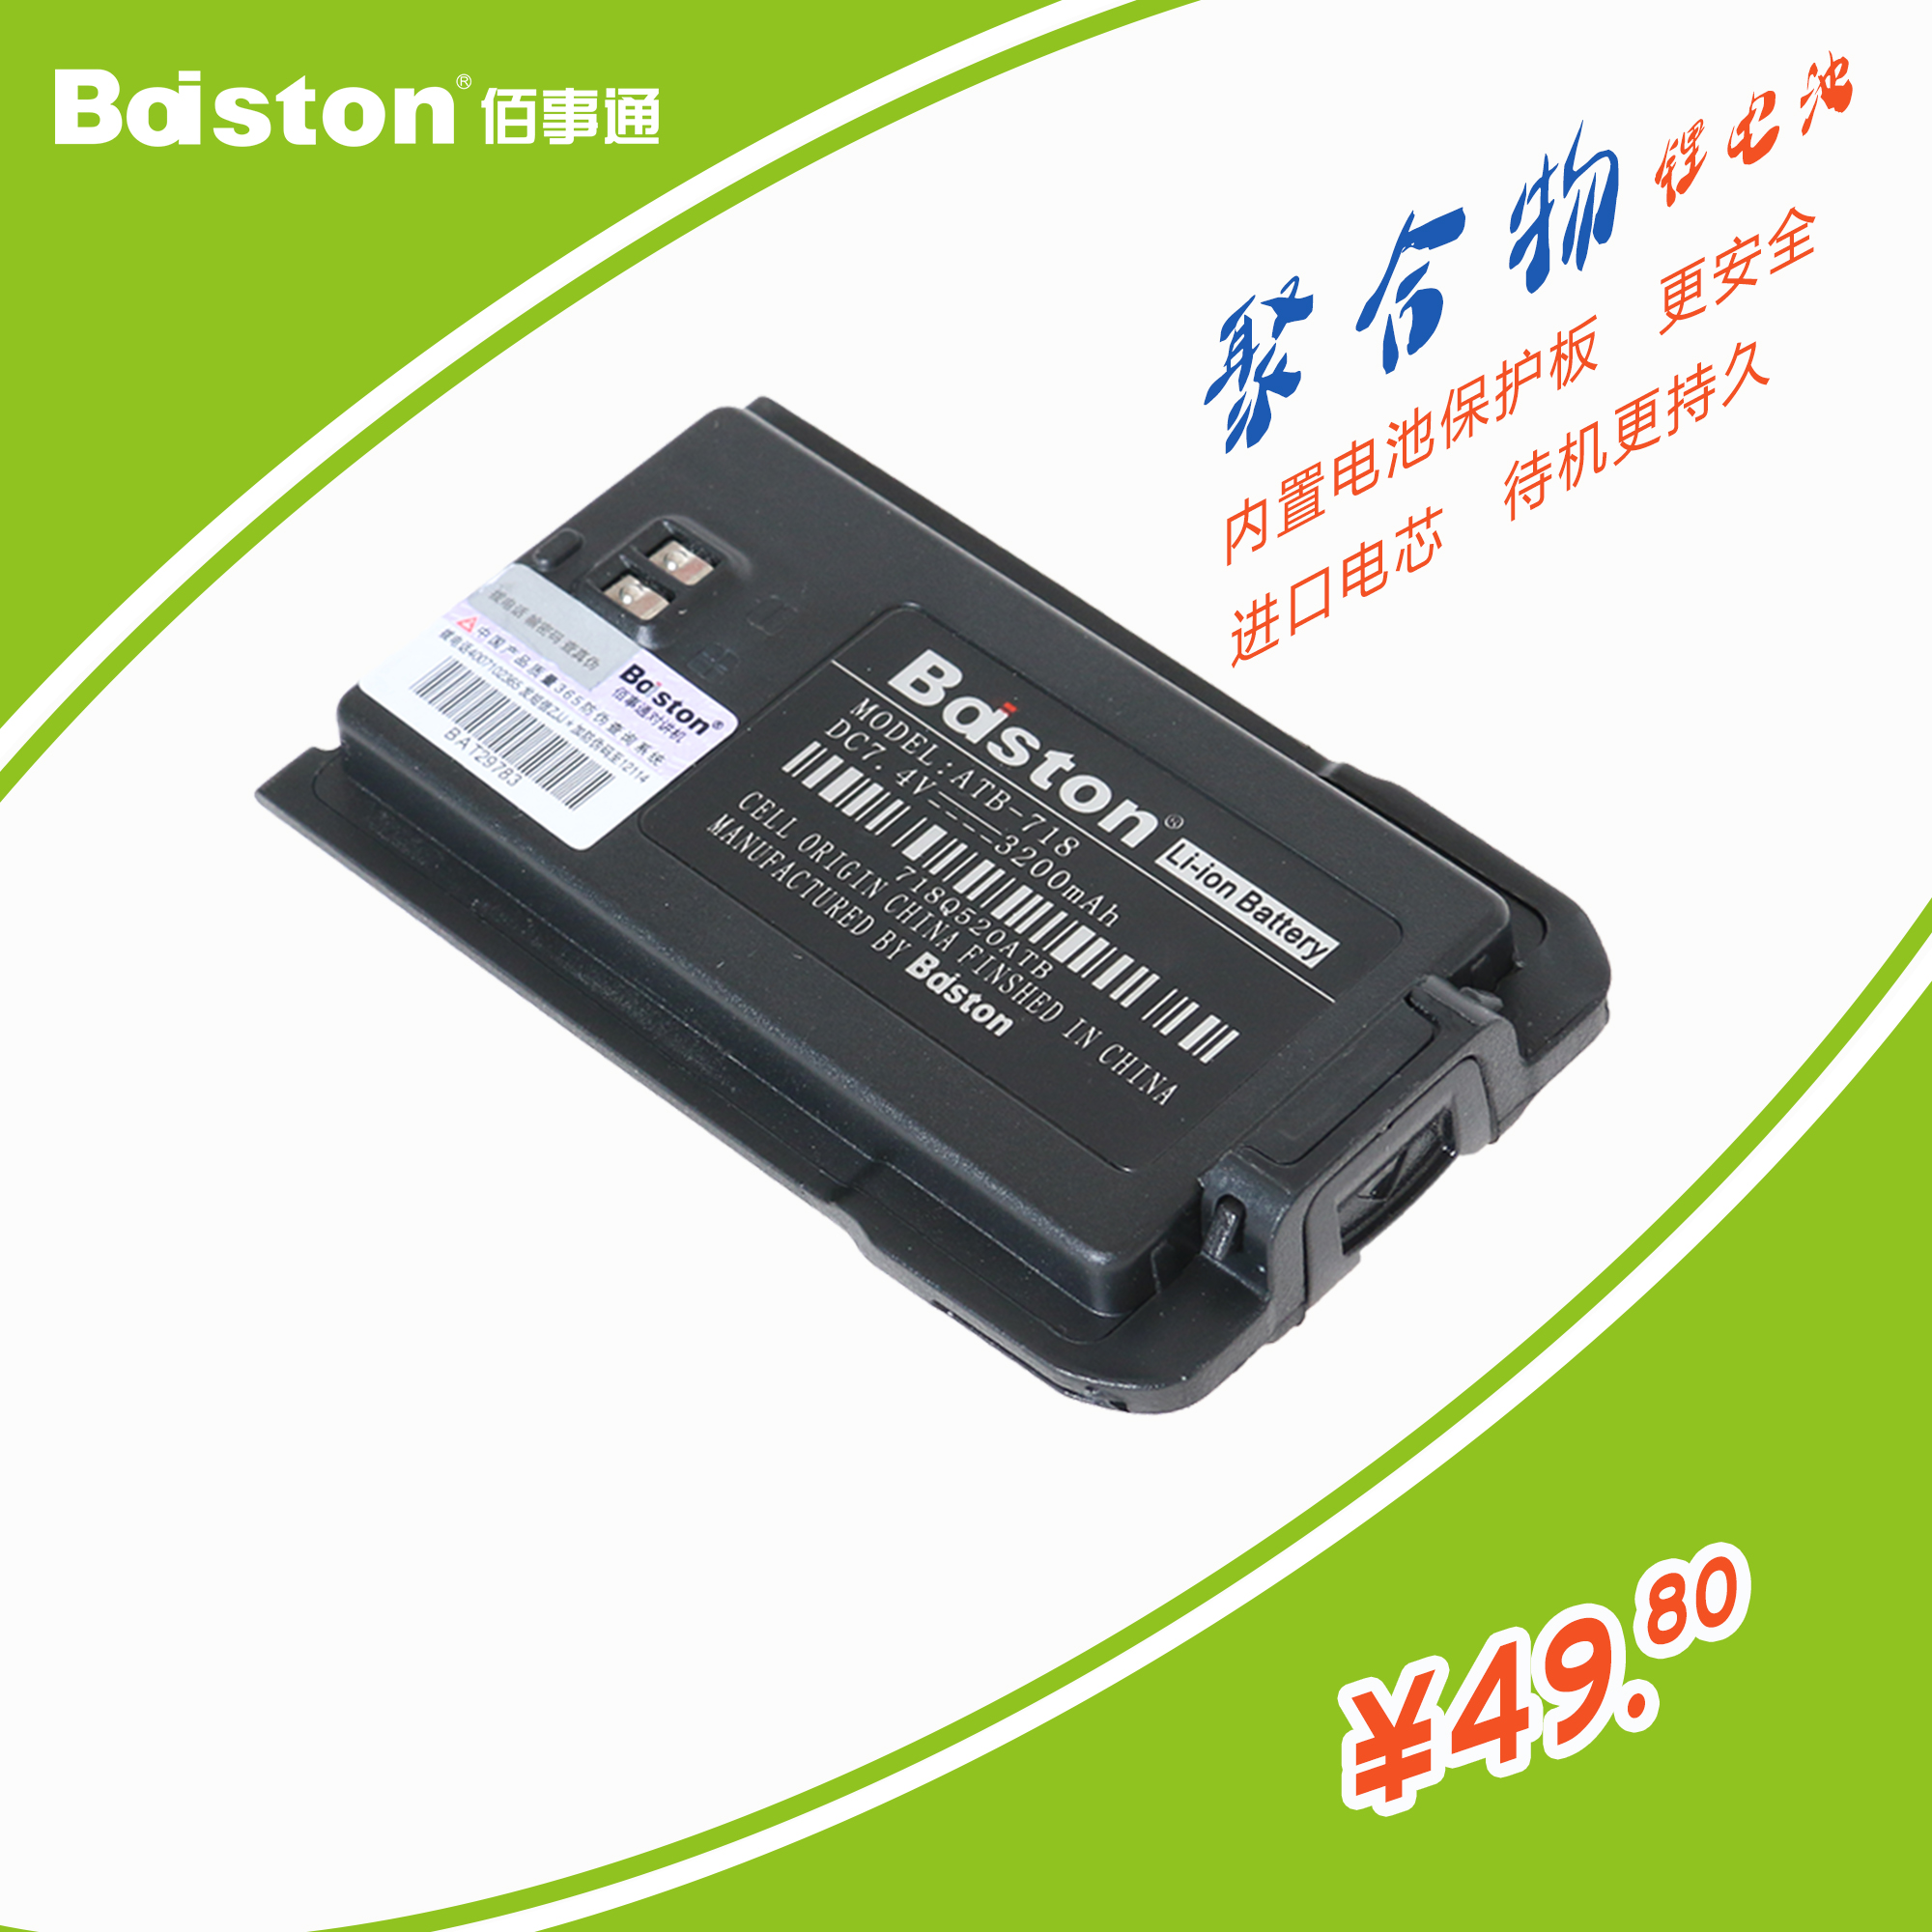 Baiston accessories bai matter through BST-718 walkie talkie batteries battery